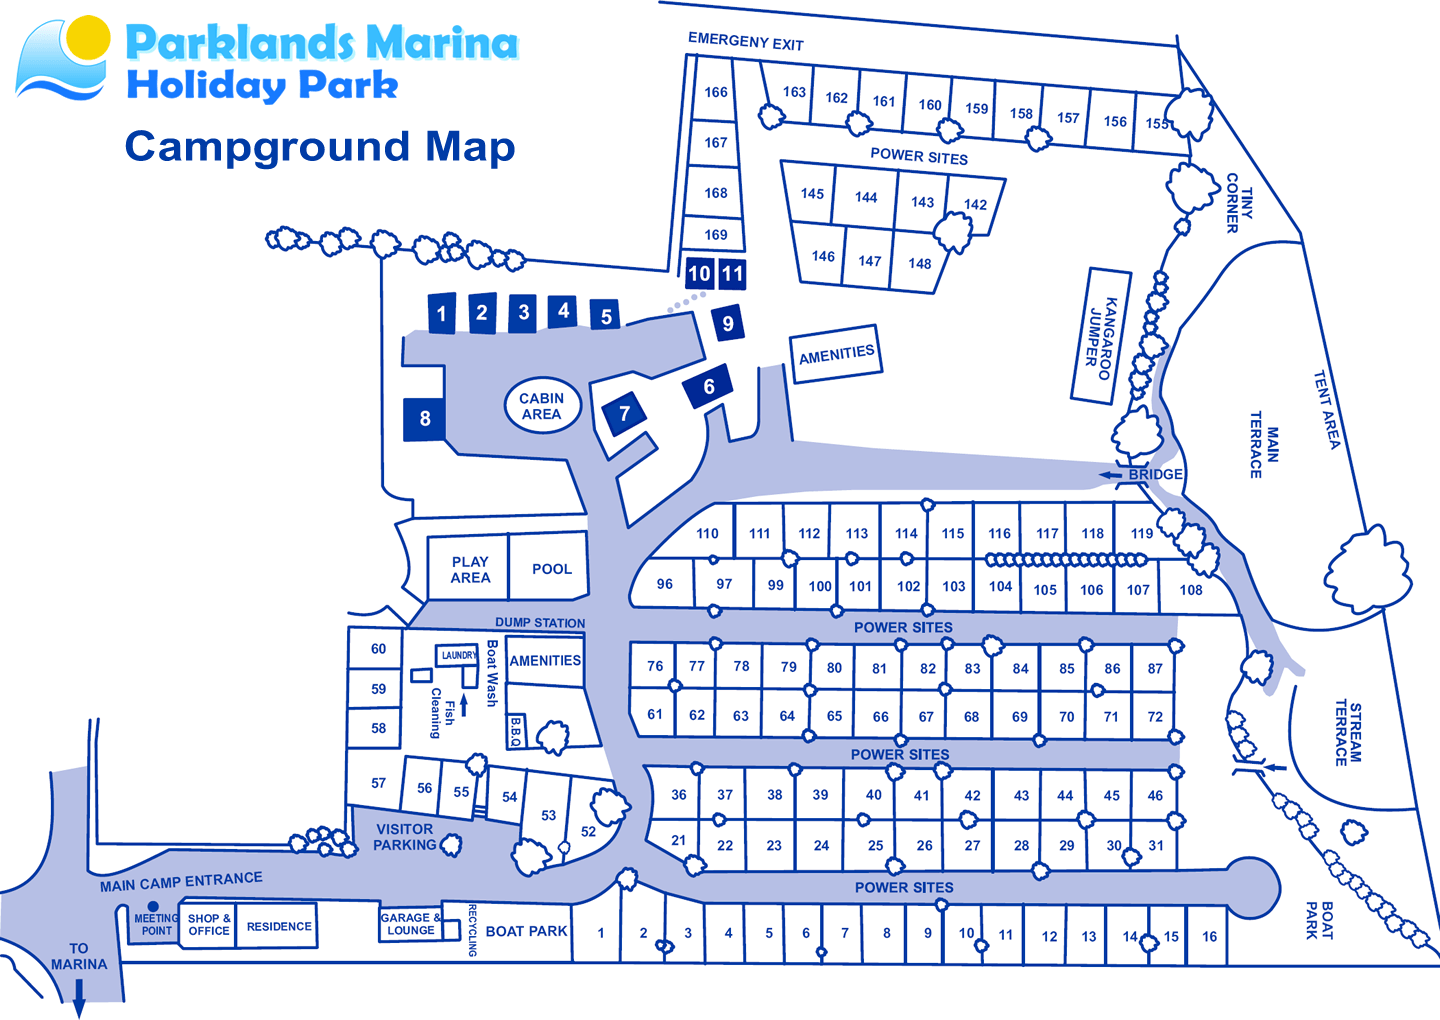 Campground Map For Parklands Marina Holiday Park In Picton NZ